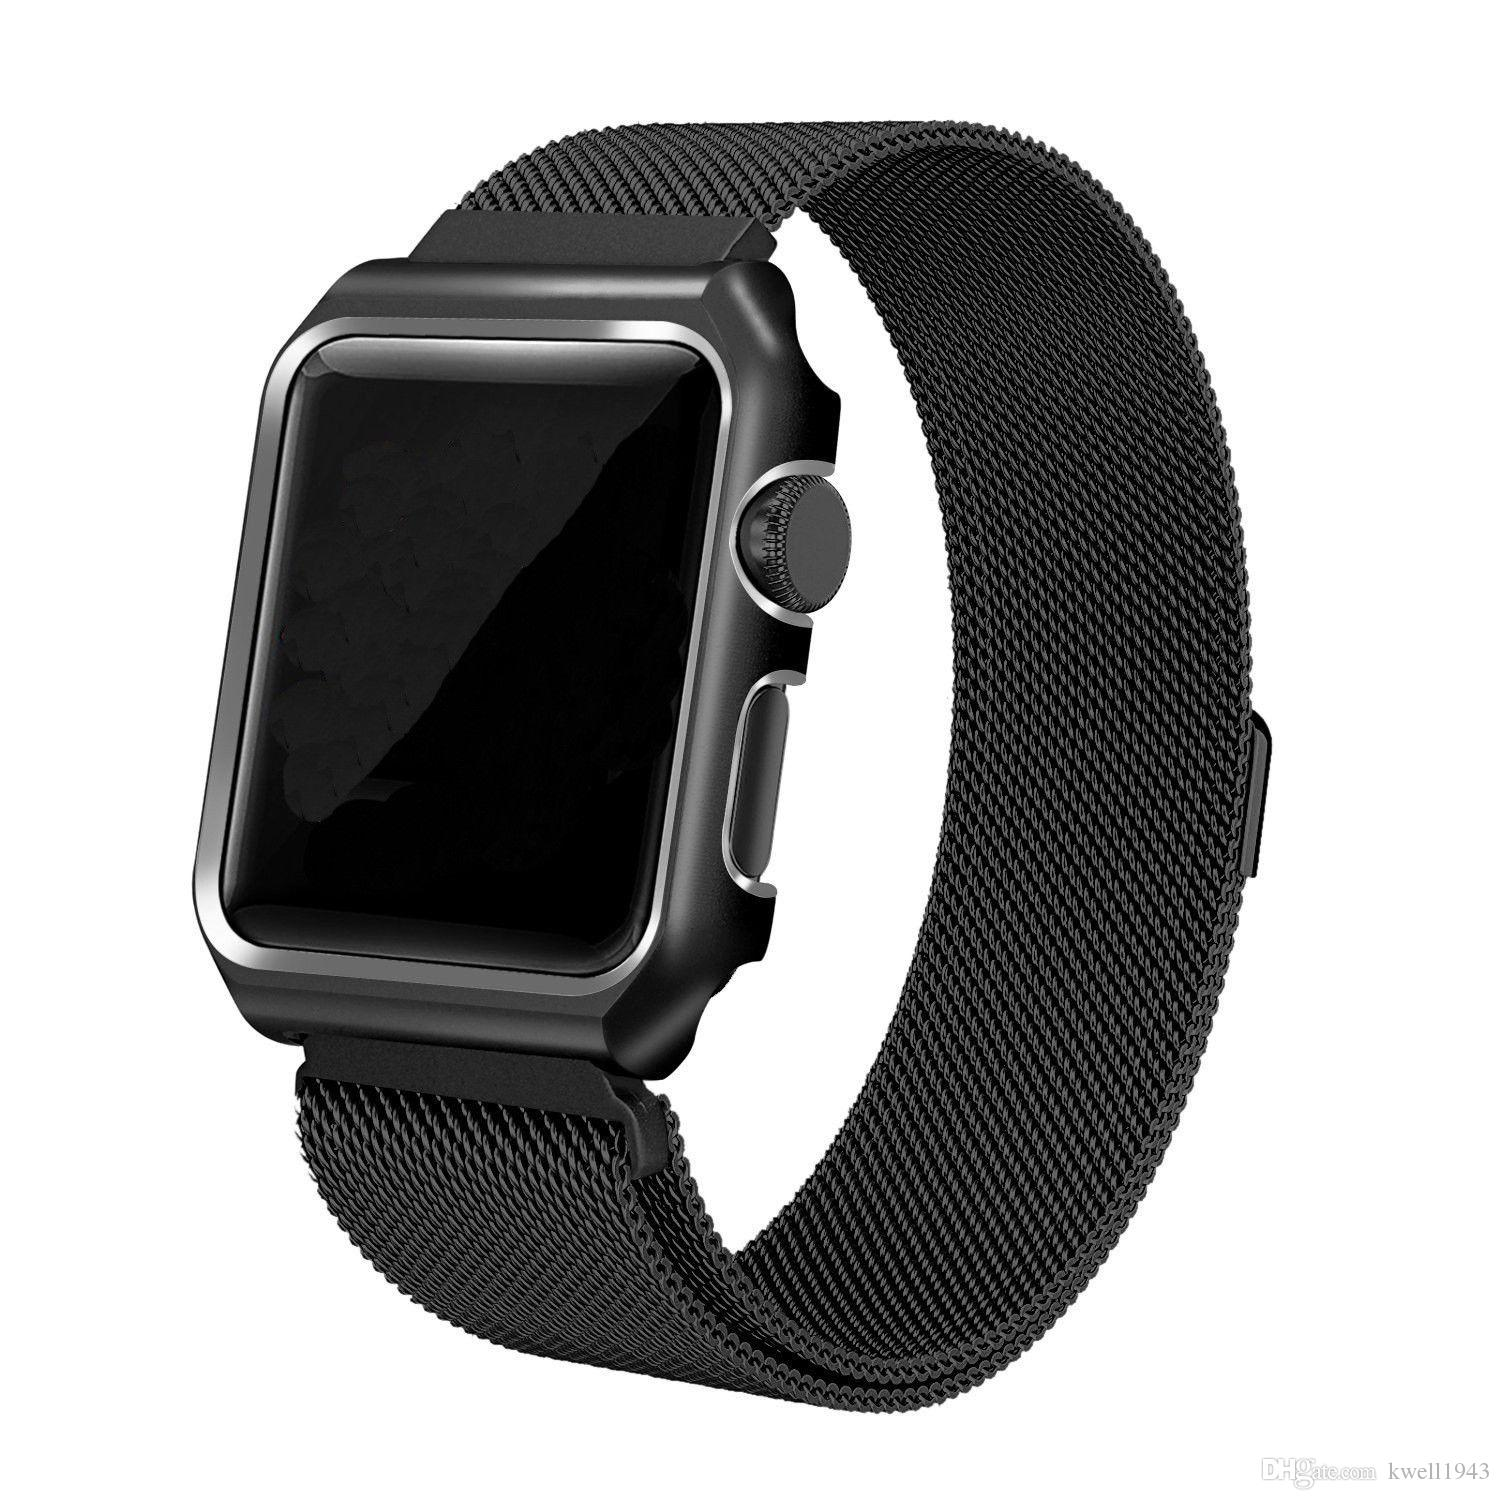 new style 9b5be 67882 Ultra Thin Aluminum Metal Alloy Bumper Case Cover For Apple Watch Series 3  2 1 iWatch 38mm/42mm Stainless Steel Band